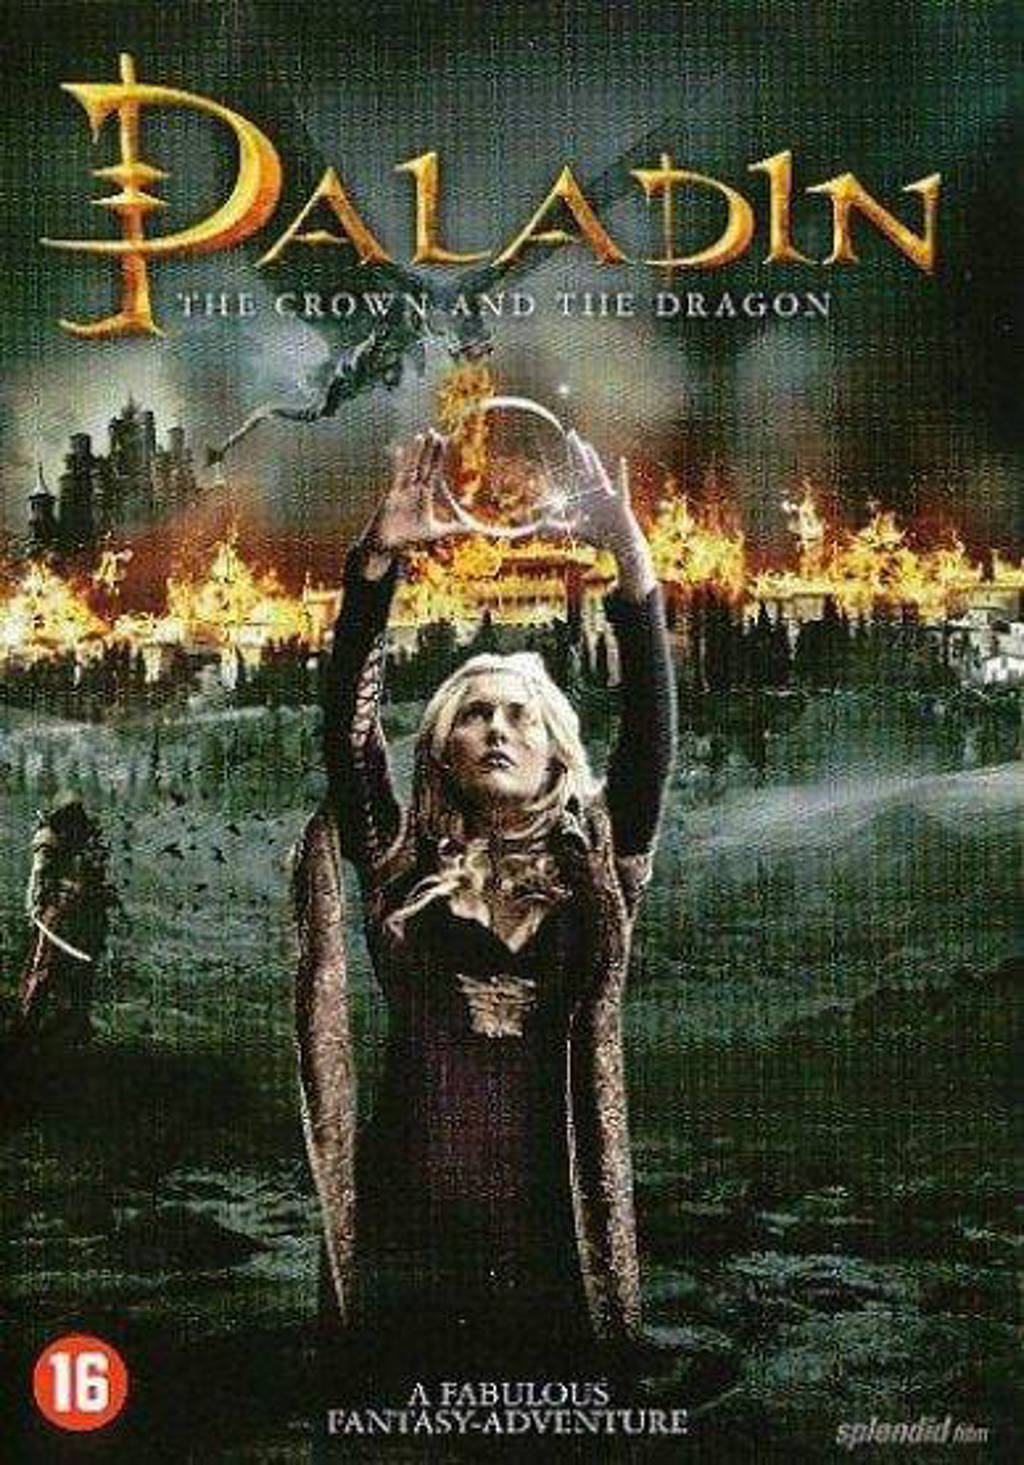 Paladin 2 - The crown and the dragon (DVD)